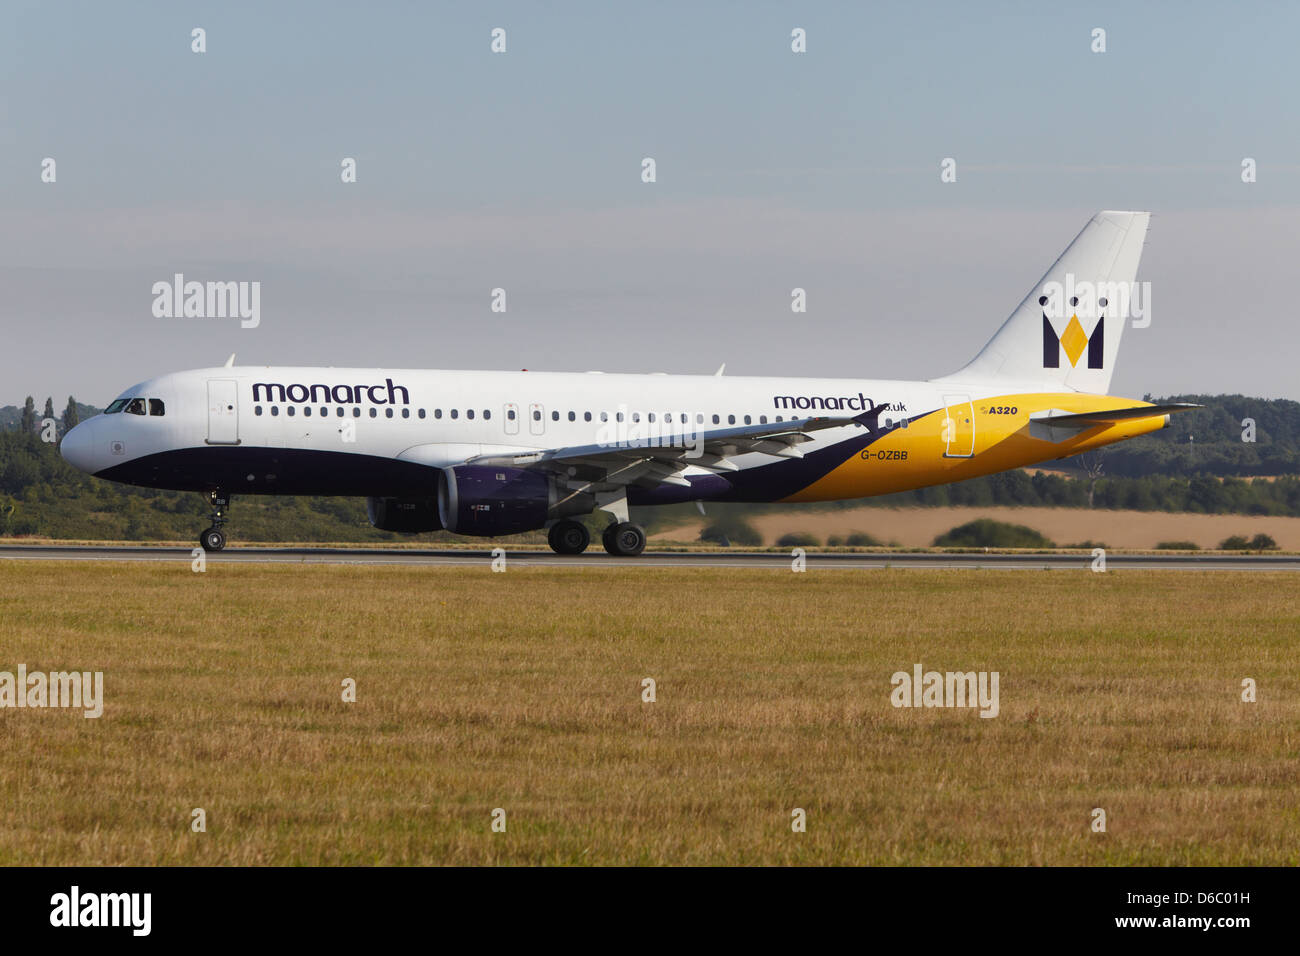 Monarch Airlines Airbus A320-212 taking off Stock Photo